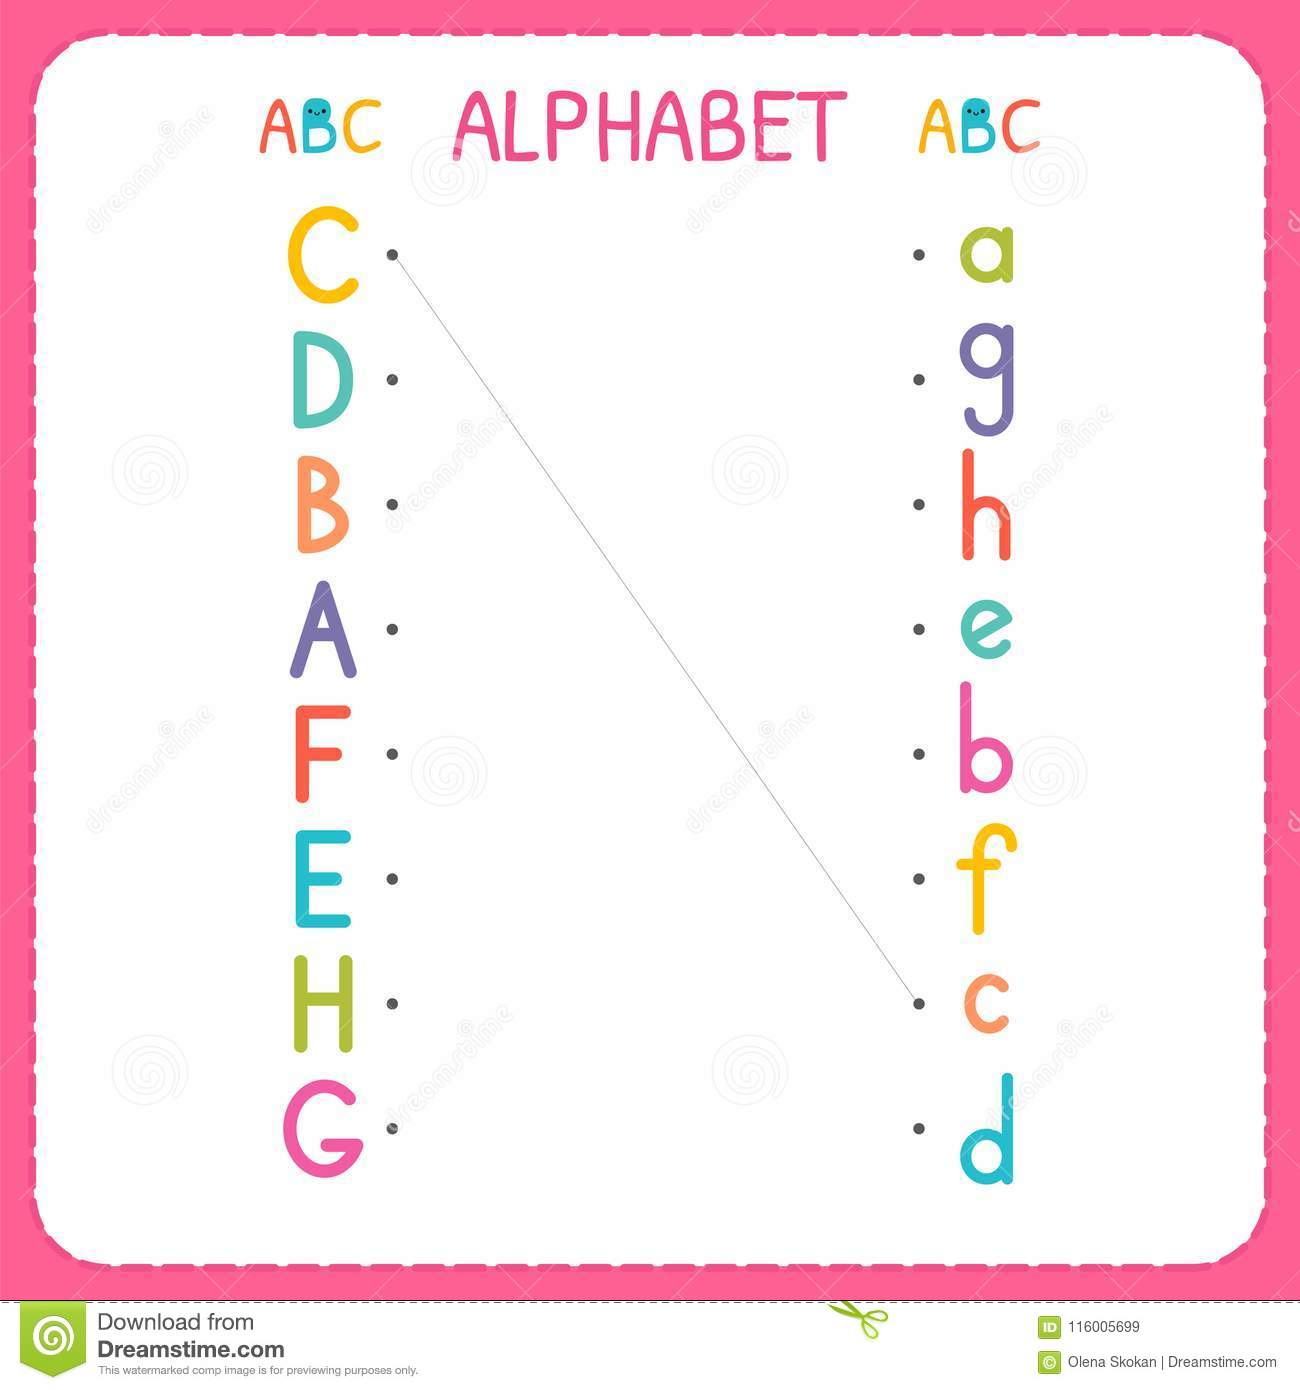 Worksheet For The Letter H